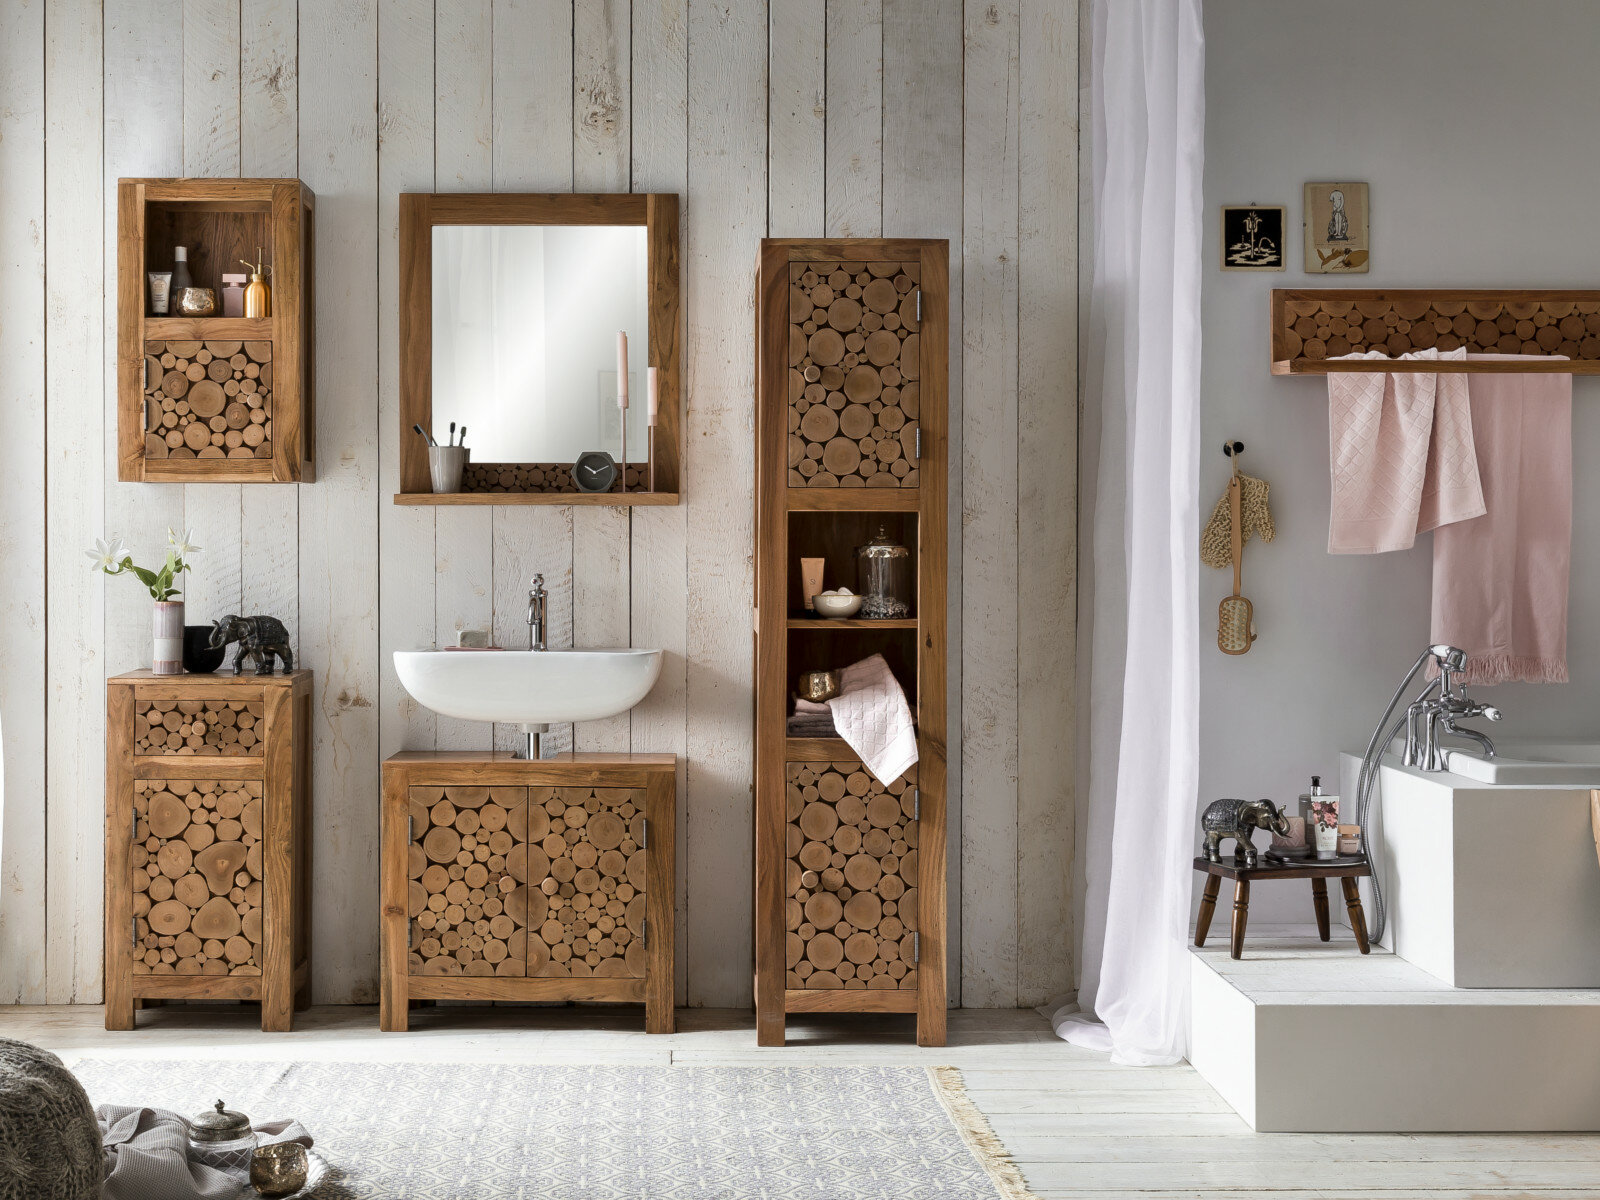 Wallace 10 Piece 10mm Bathroom Furniture Suite with Mirror